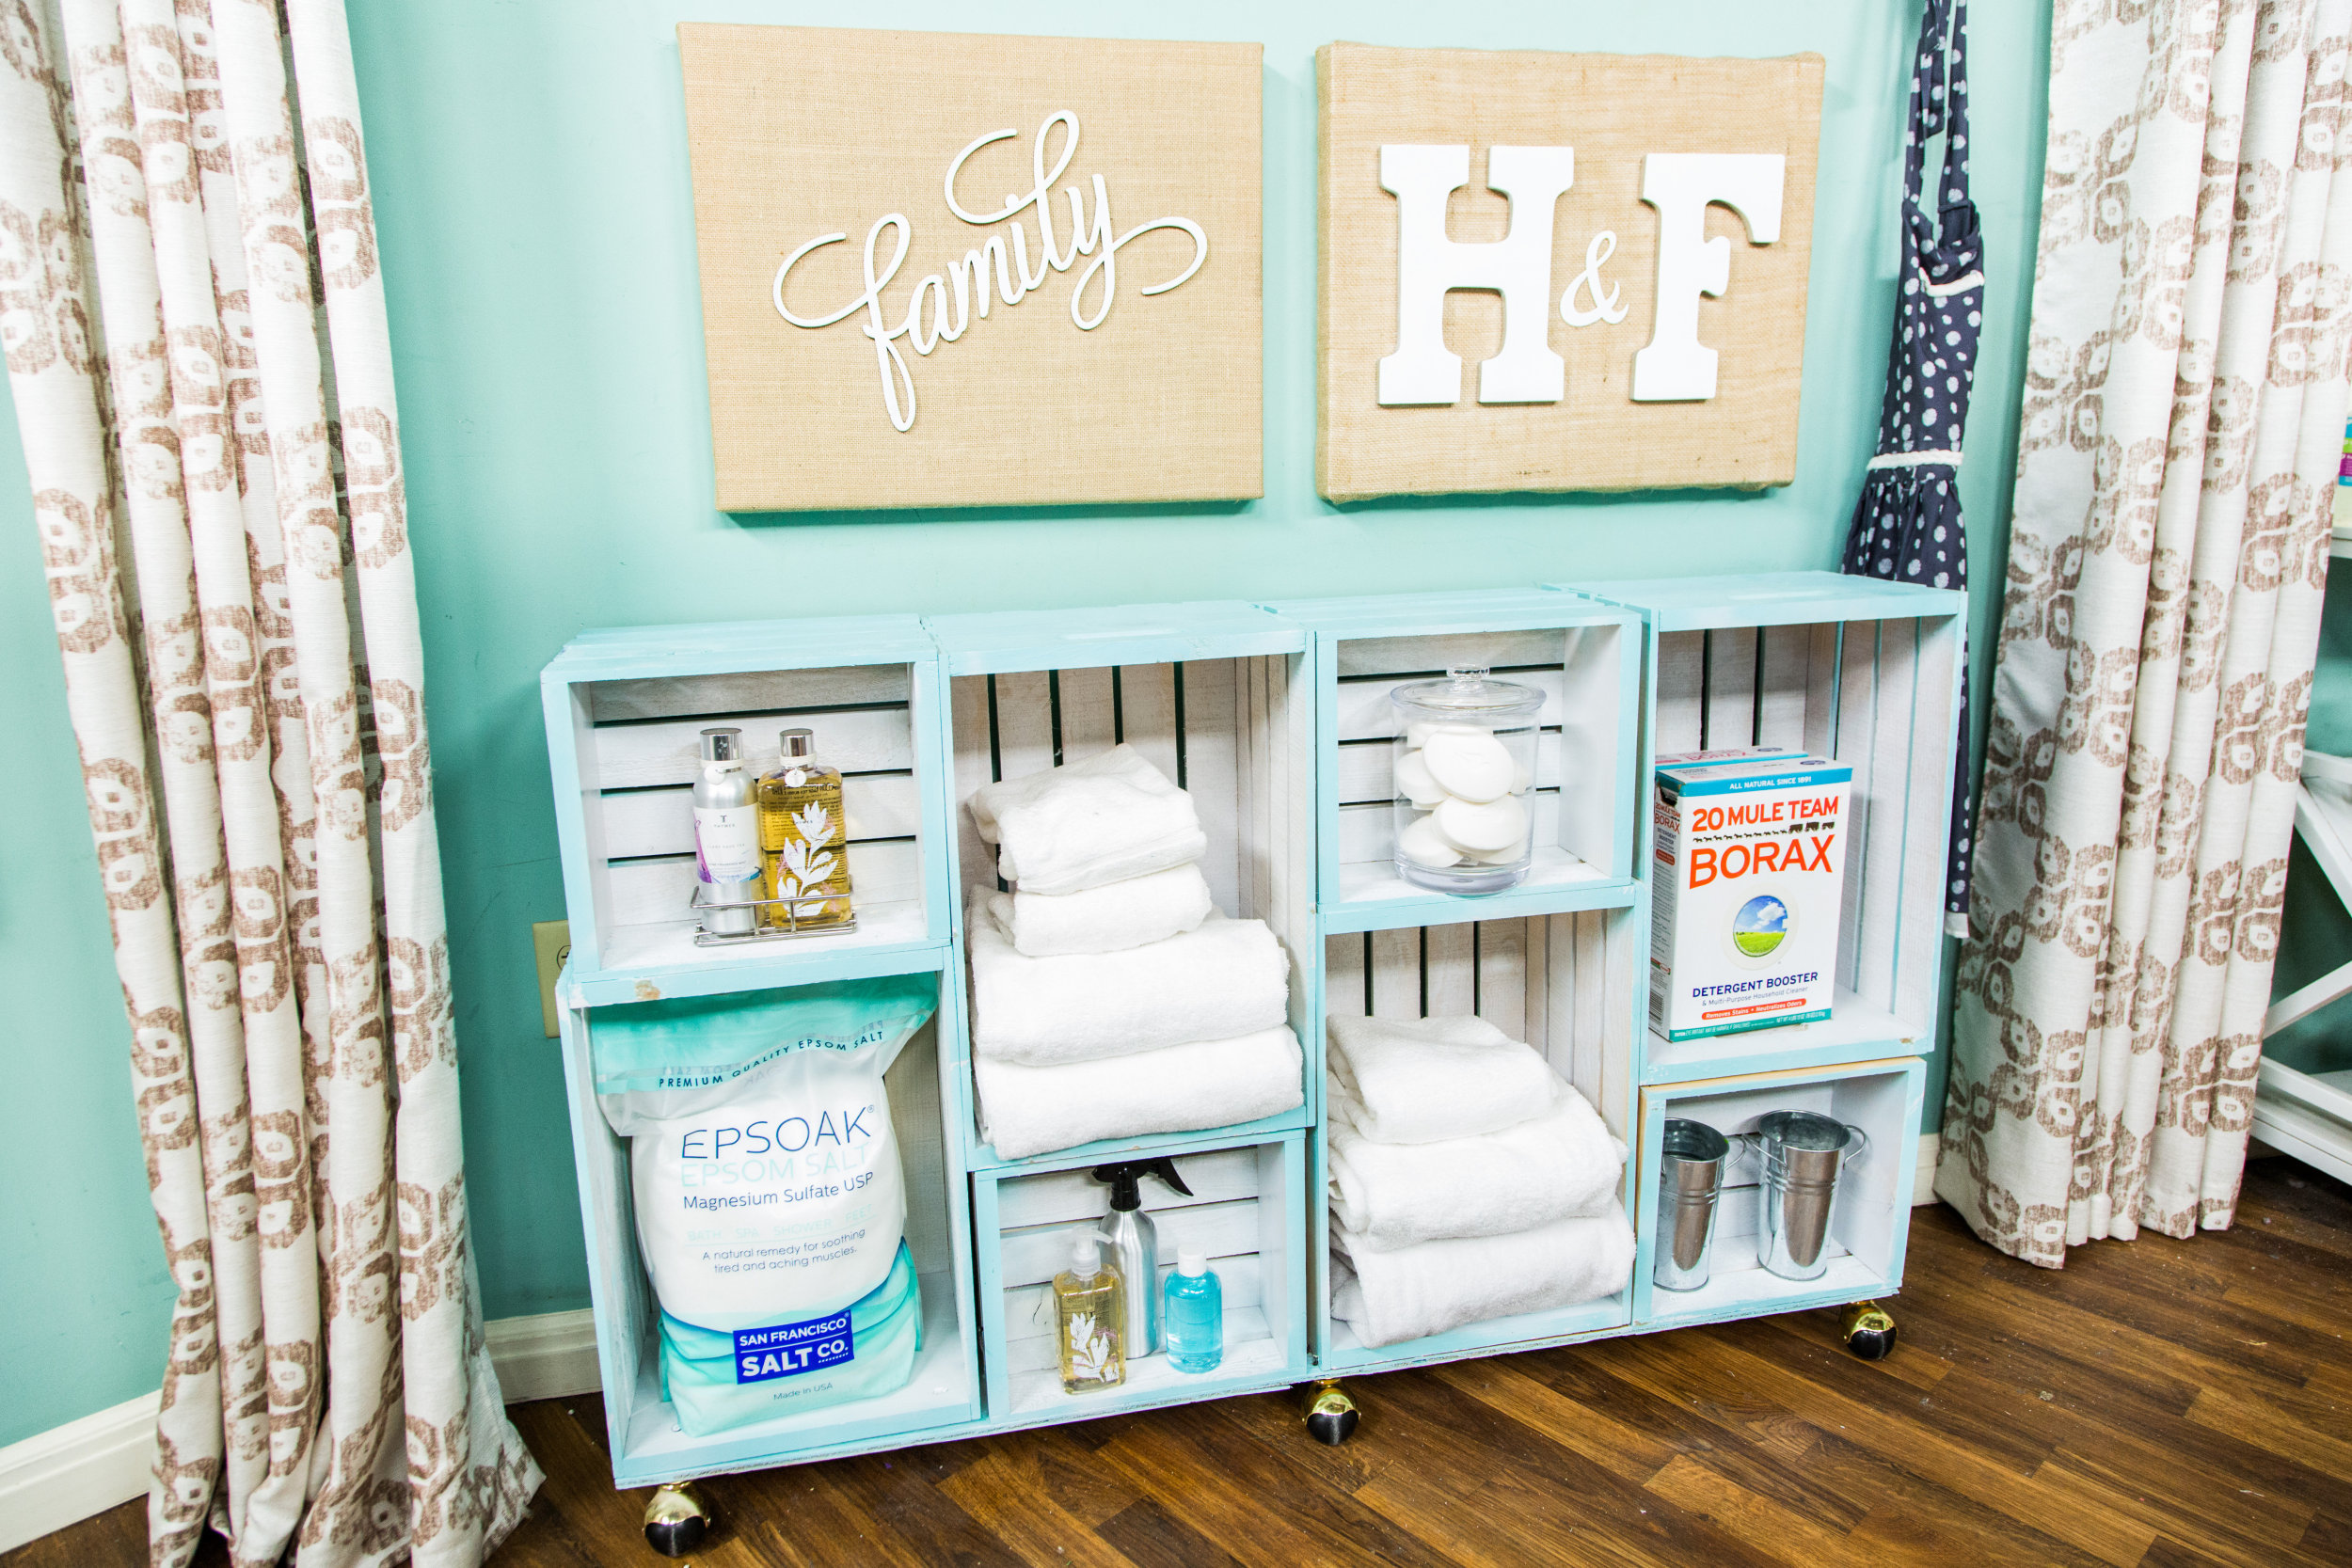 Diy bathroom storage - Diy Bathroom Storage